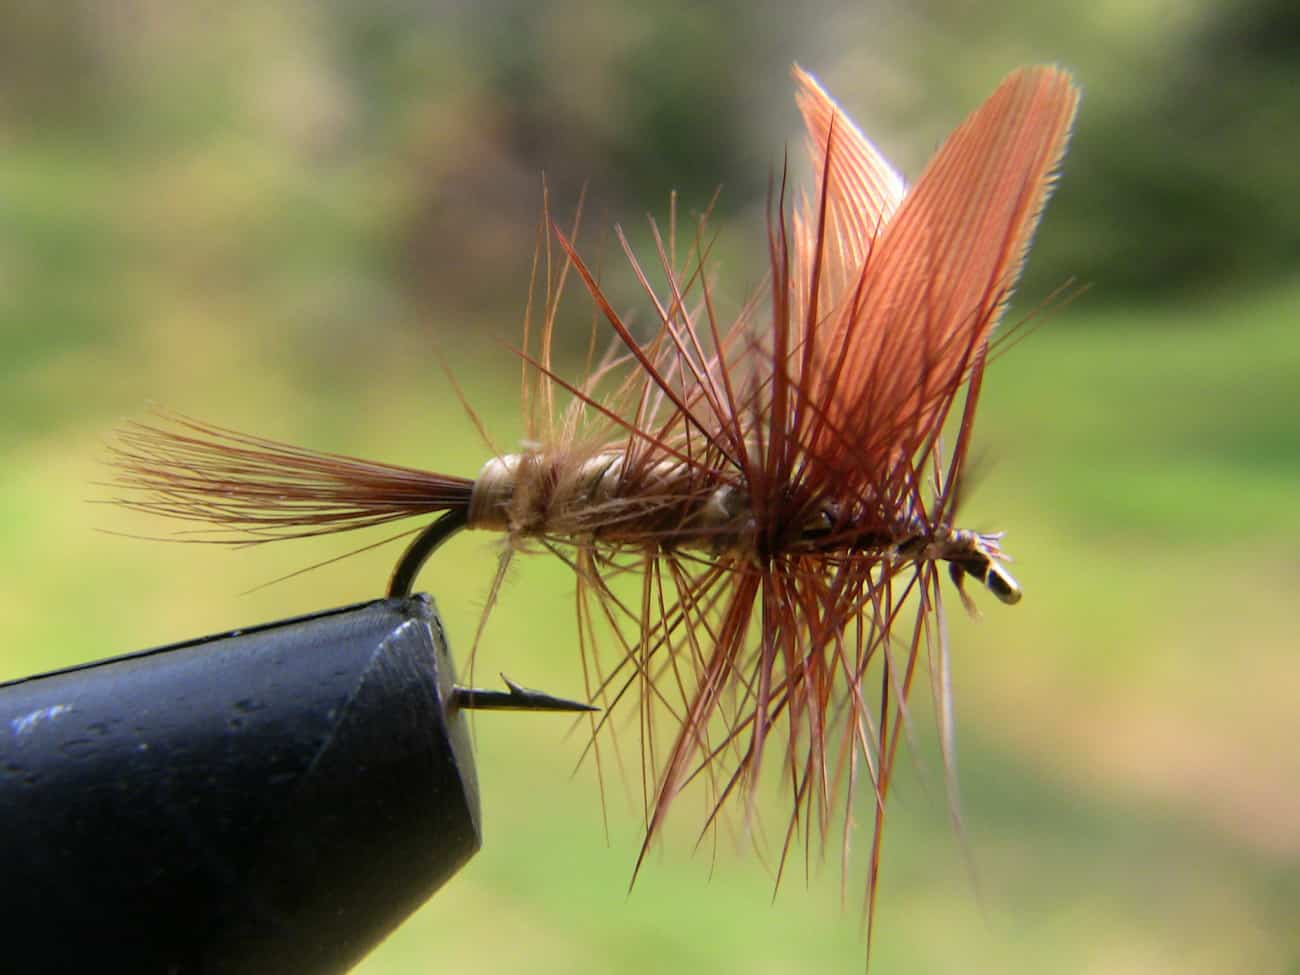 A closeup image of the male beaverkill pattern.